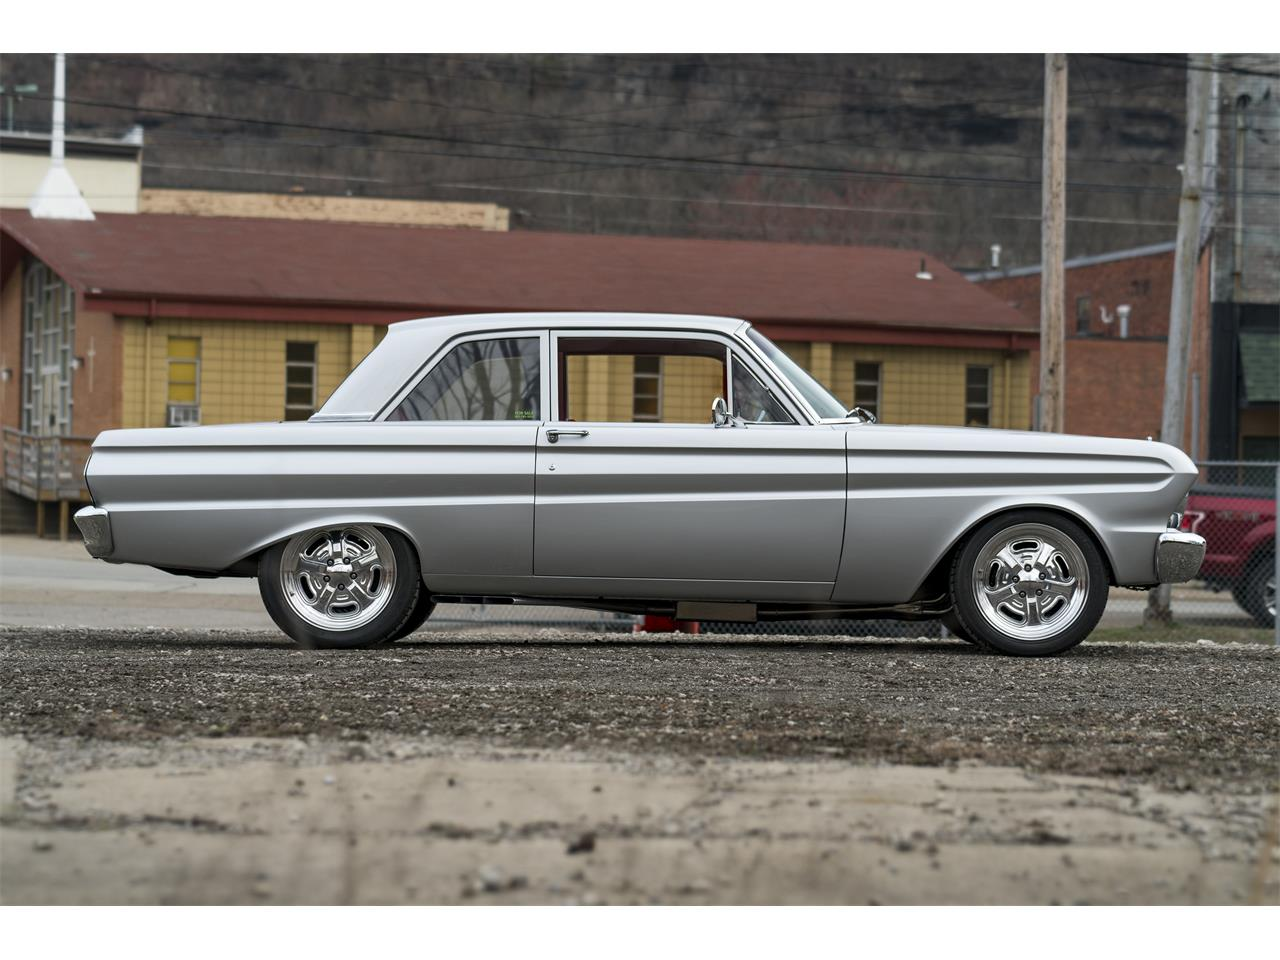 Large Picture of Classic 1964 Ford Falcon located in Pittsburgh Pennsylvania - $54,000.00 Offered by Fort Pitt Classic Cars - PZS8